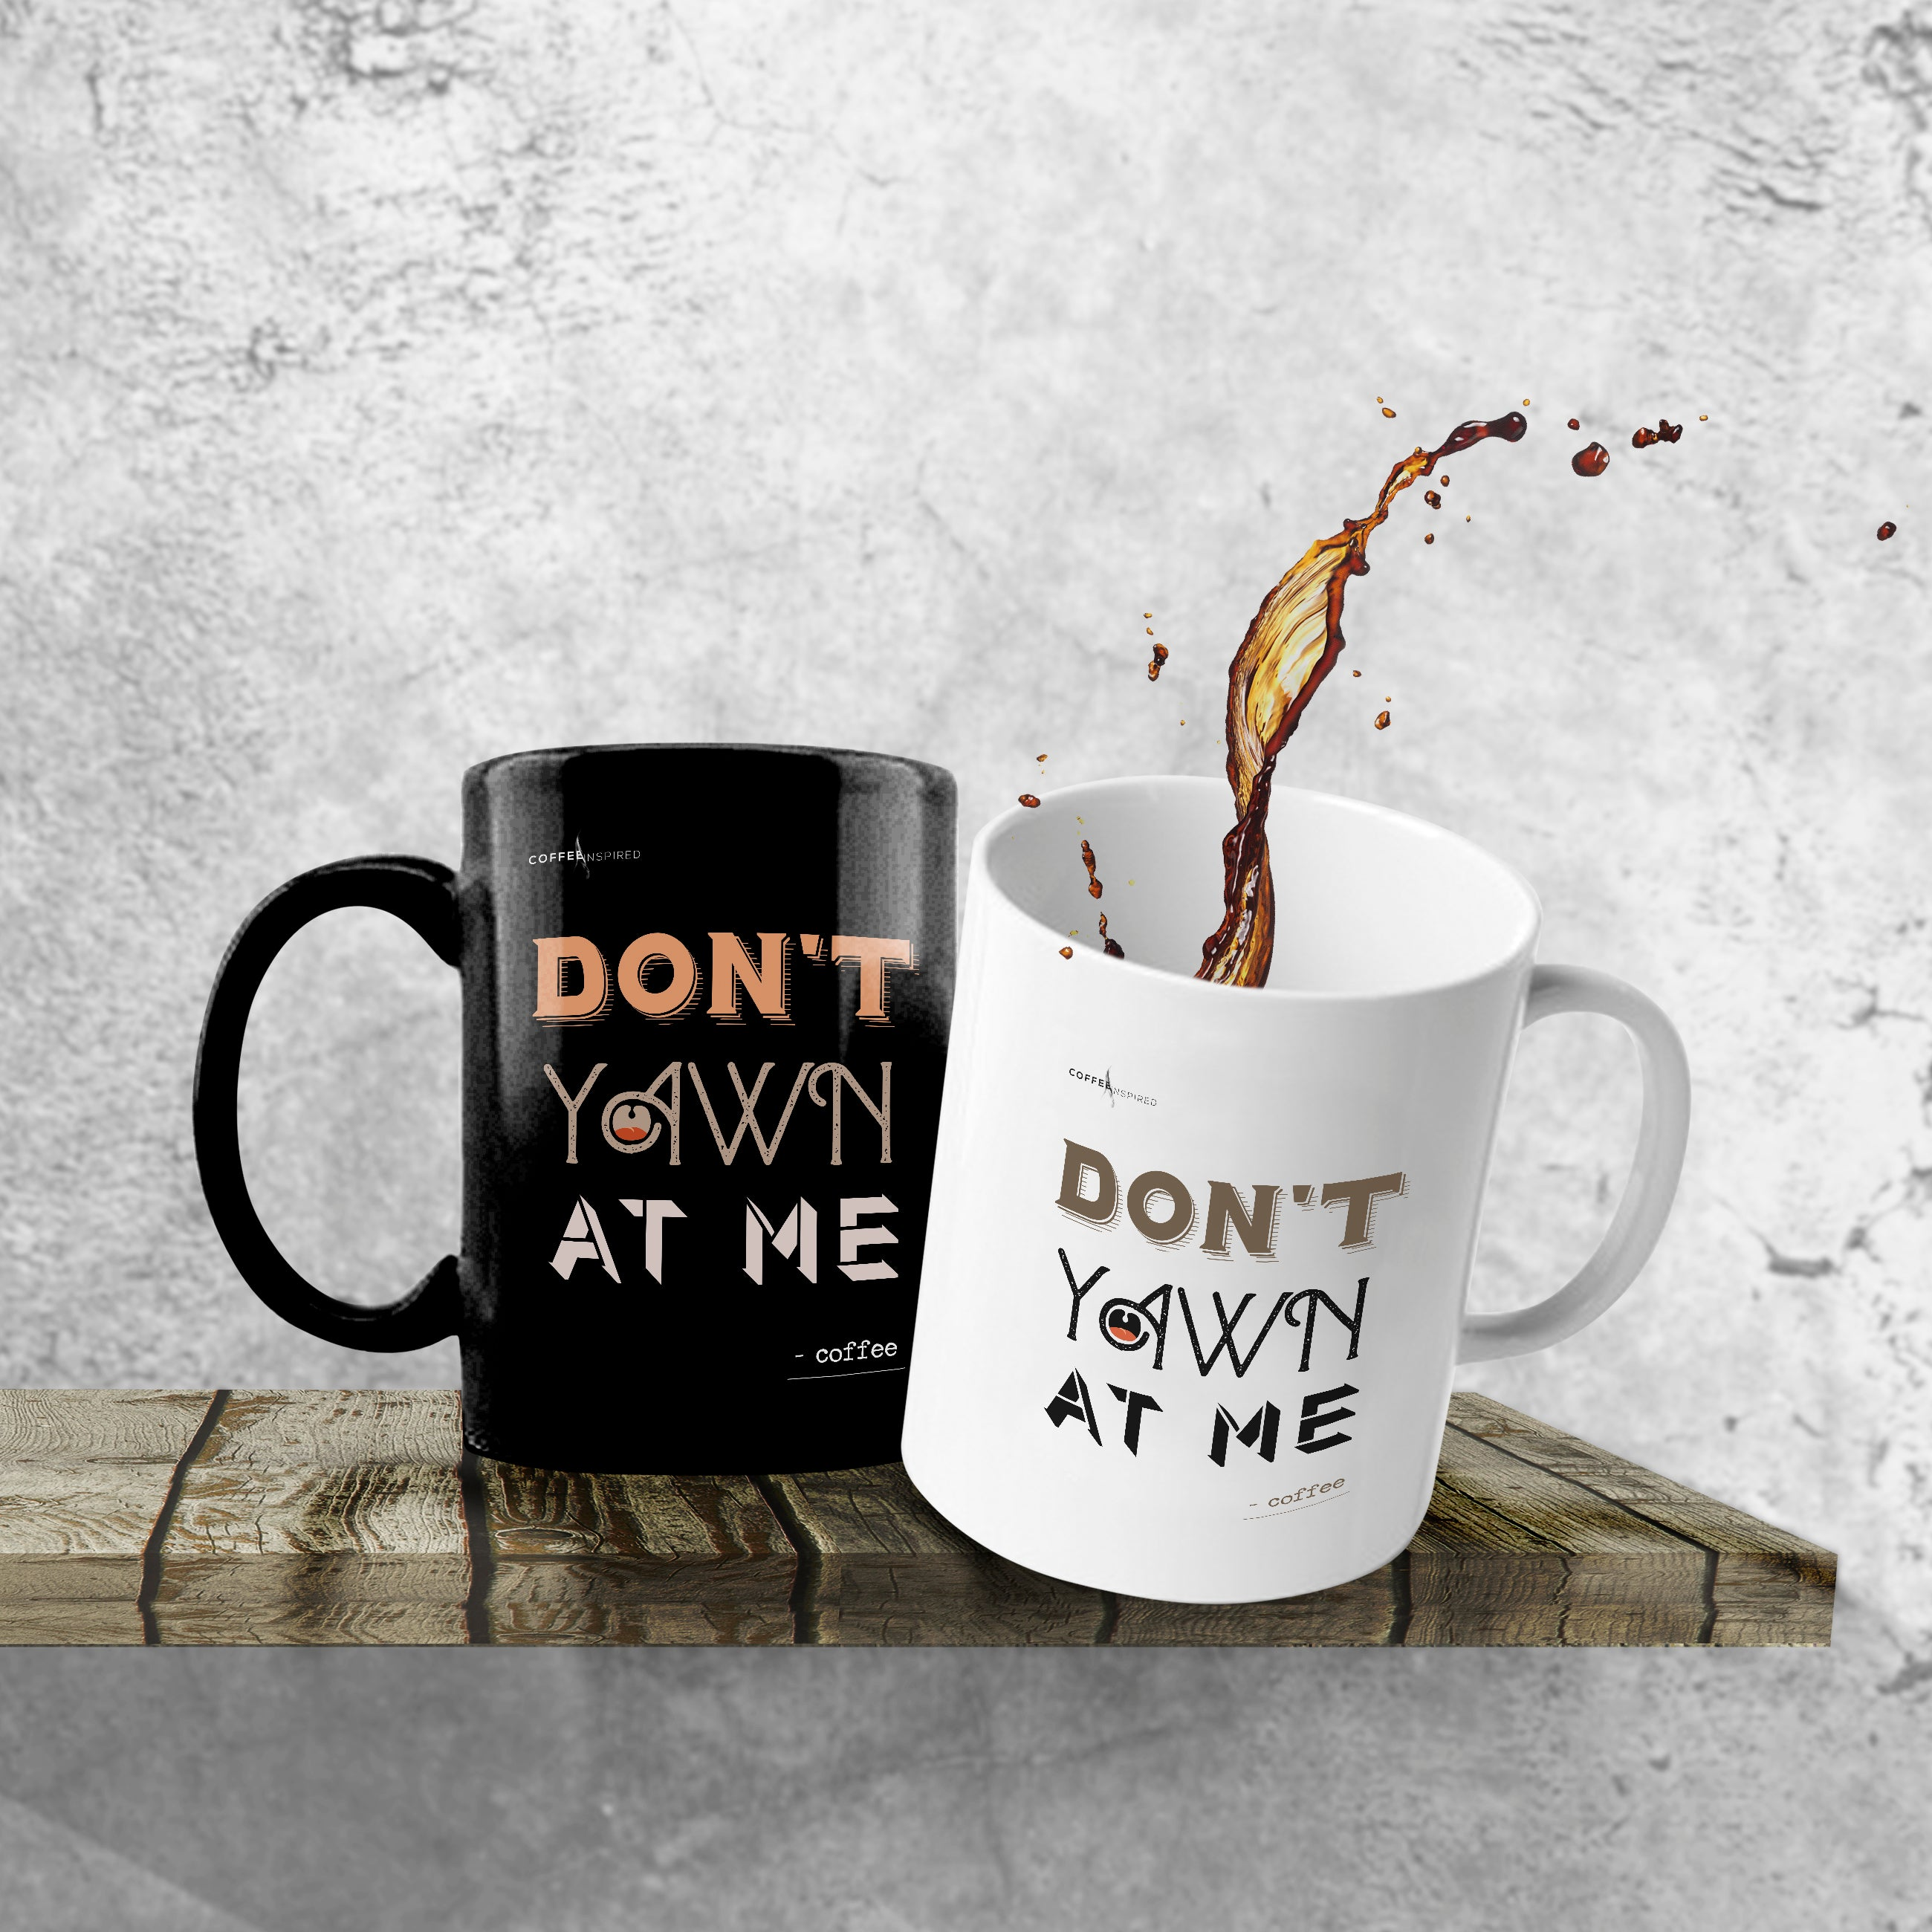 MUG - Don't Yawn at Me